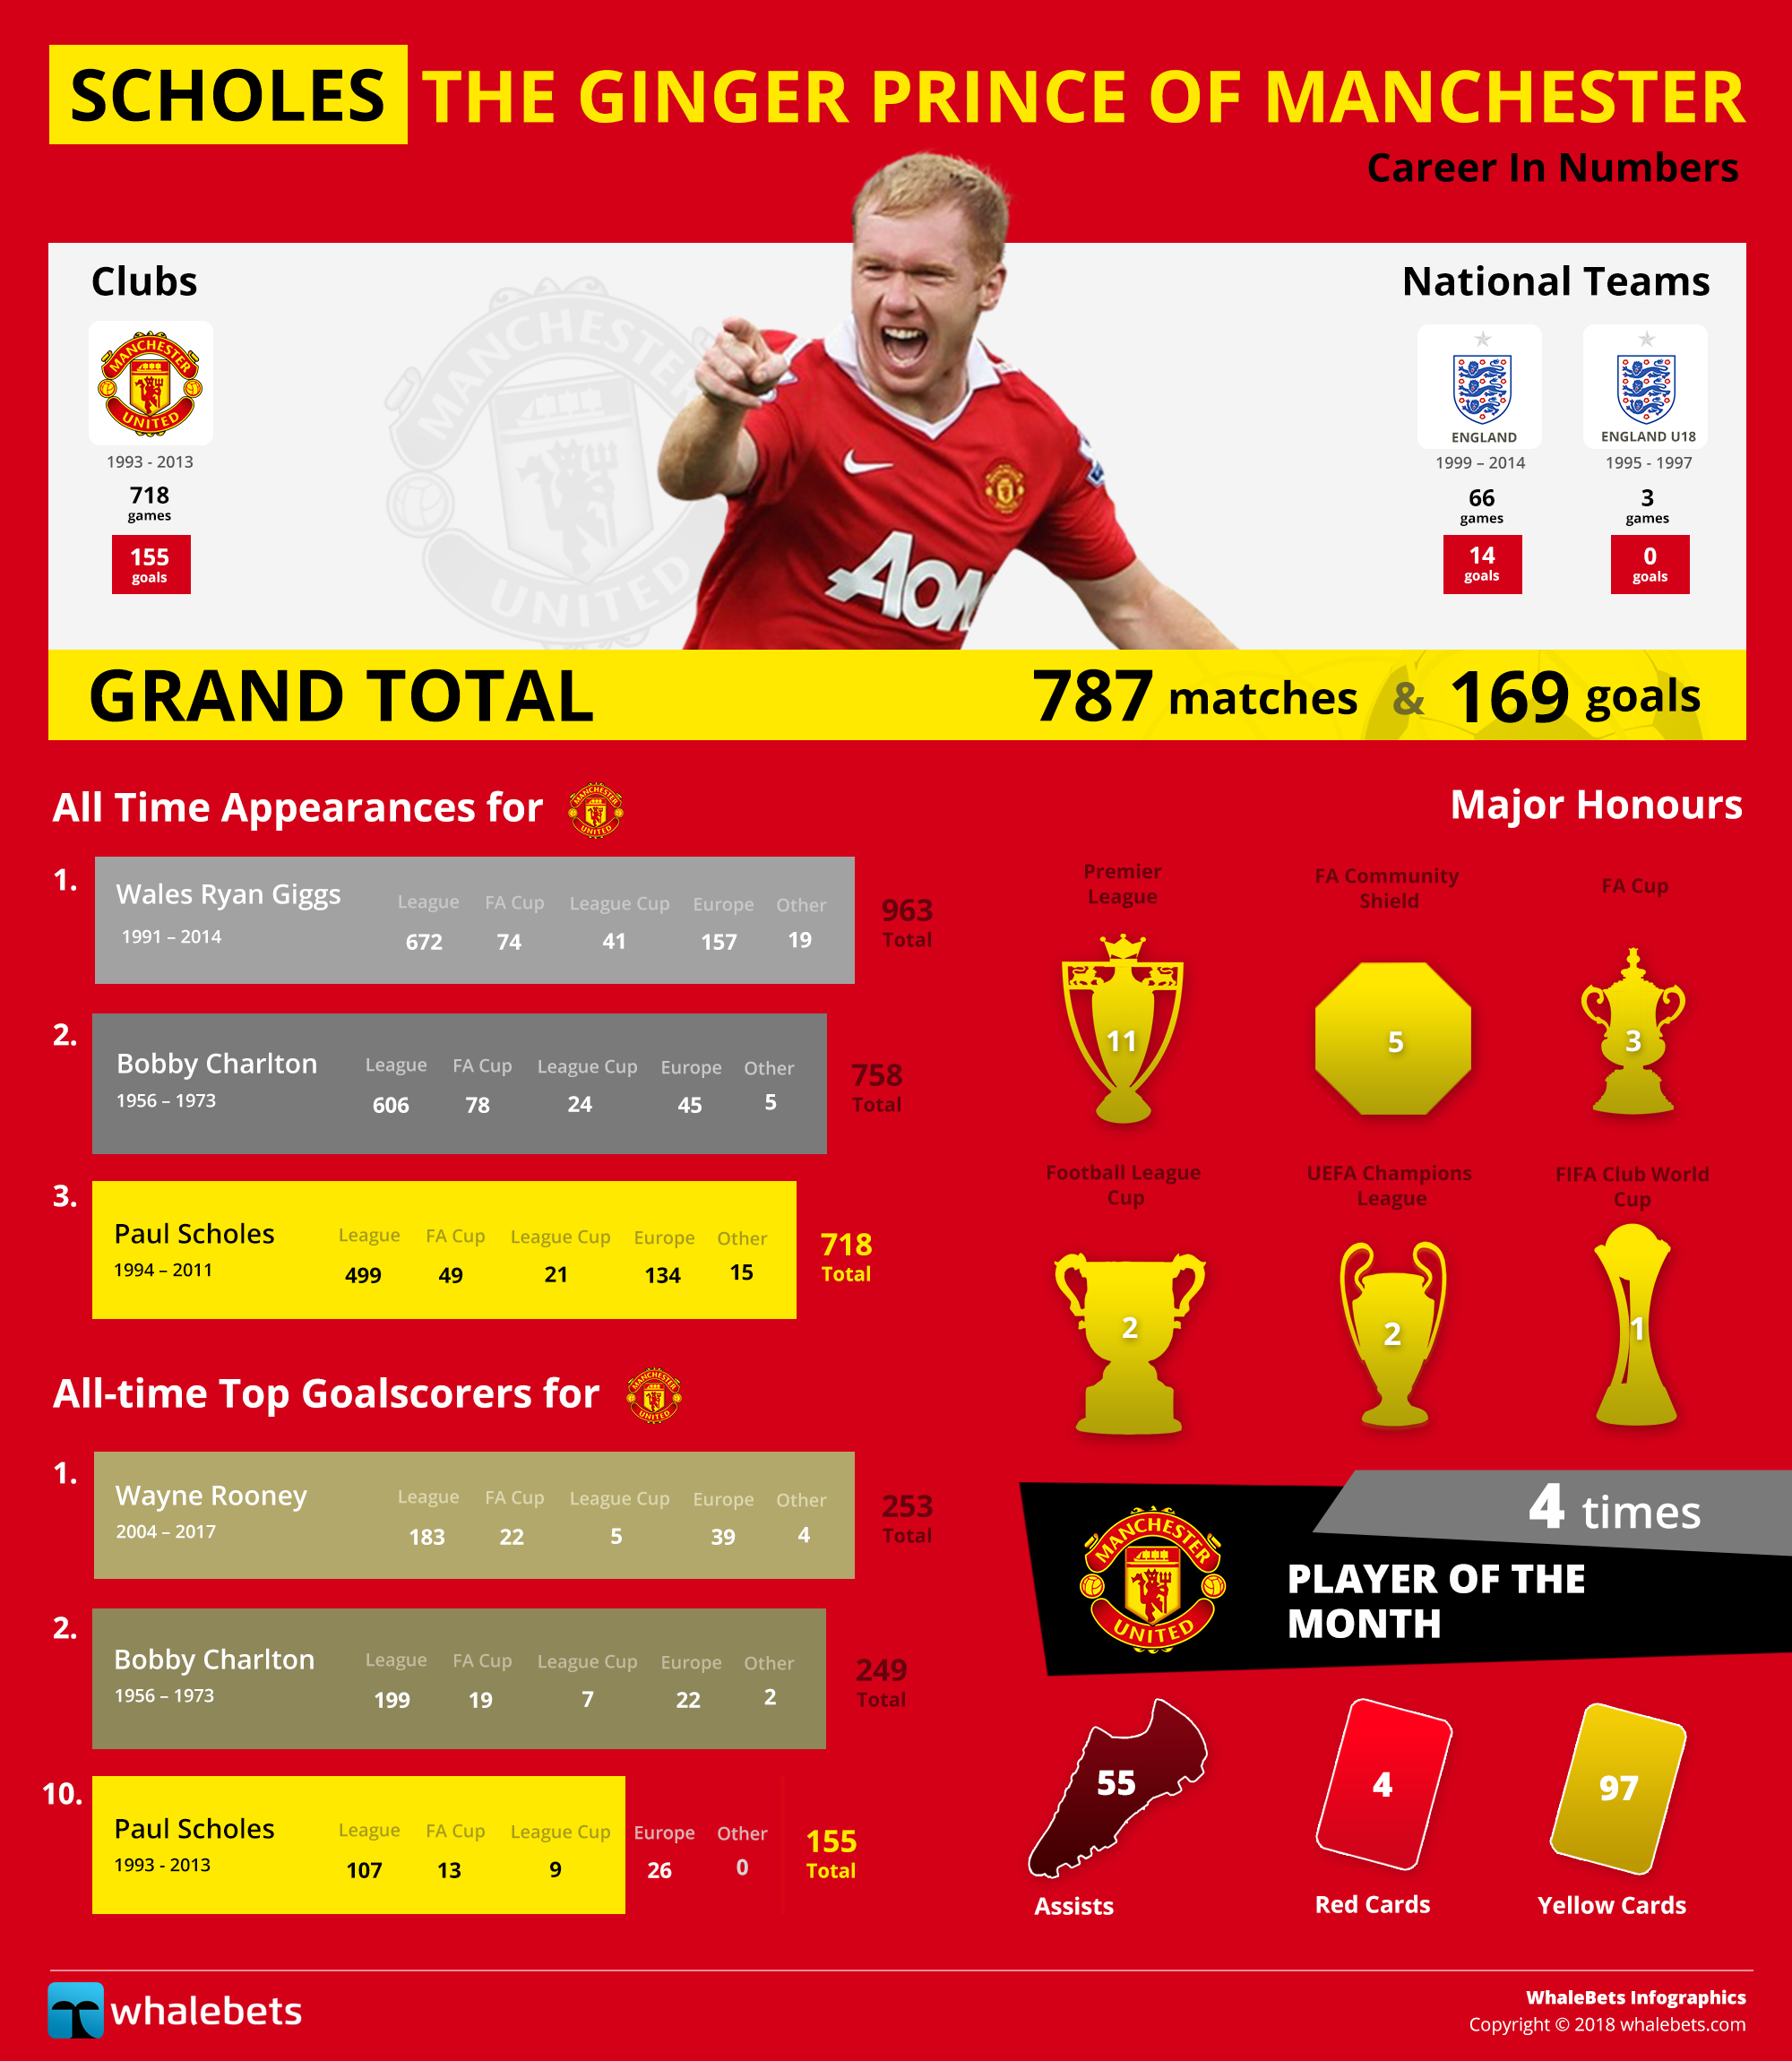 Scholes: The Ginger Prince of Manchester by Whalebets.com